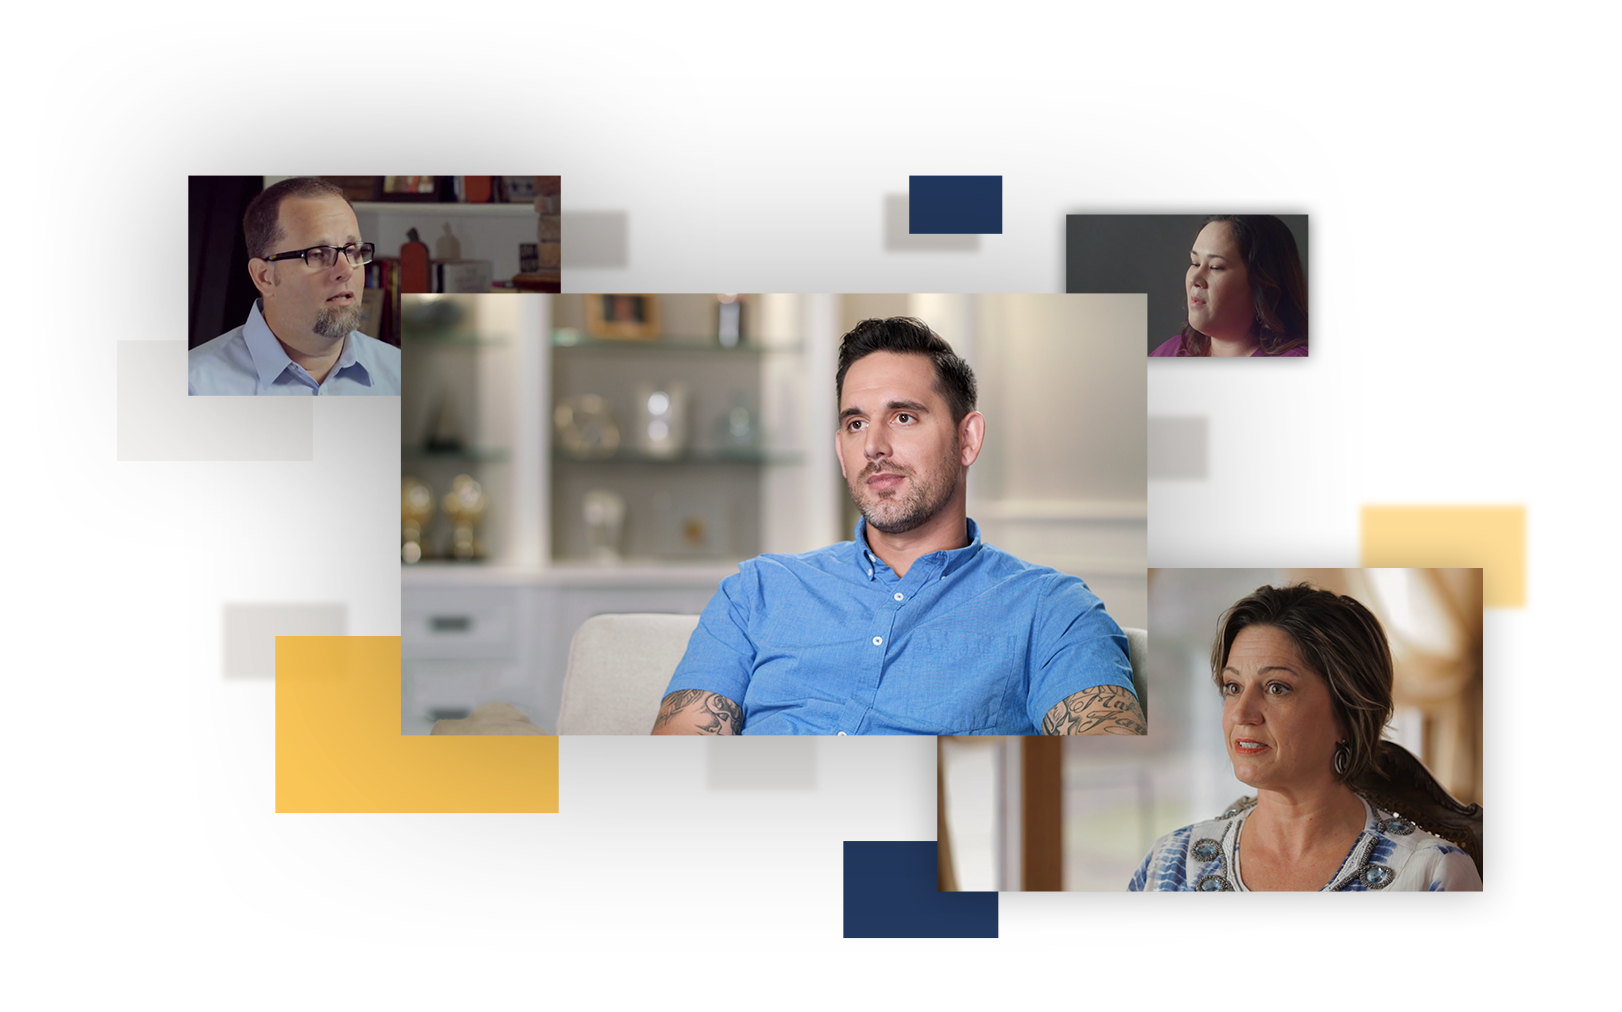 Watch videos of real VIVITROL® (naltrexone for extended-release injectable suspension) patients sharing stories of their opioid addiction recovery journey and experience with VIVITROL.